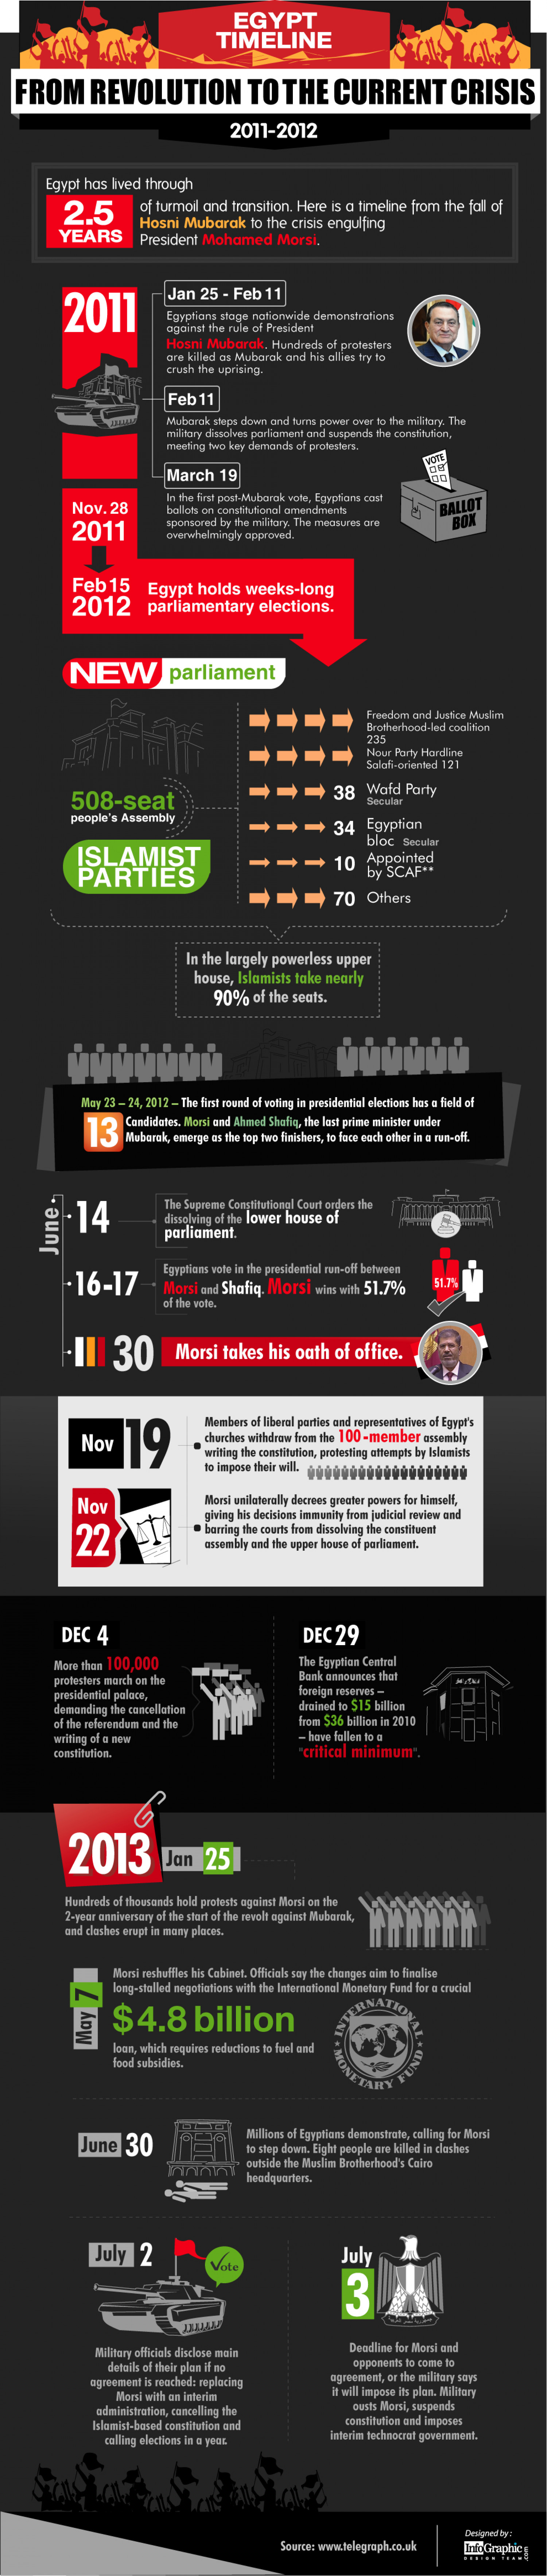 Egypt Timeline: From Revolution To The Current Crisis Infographic